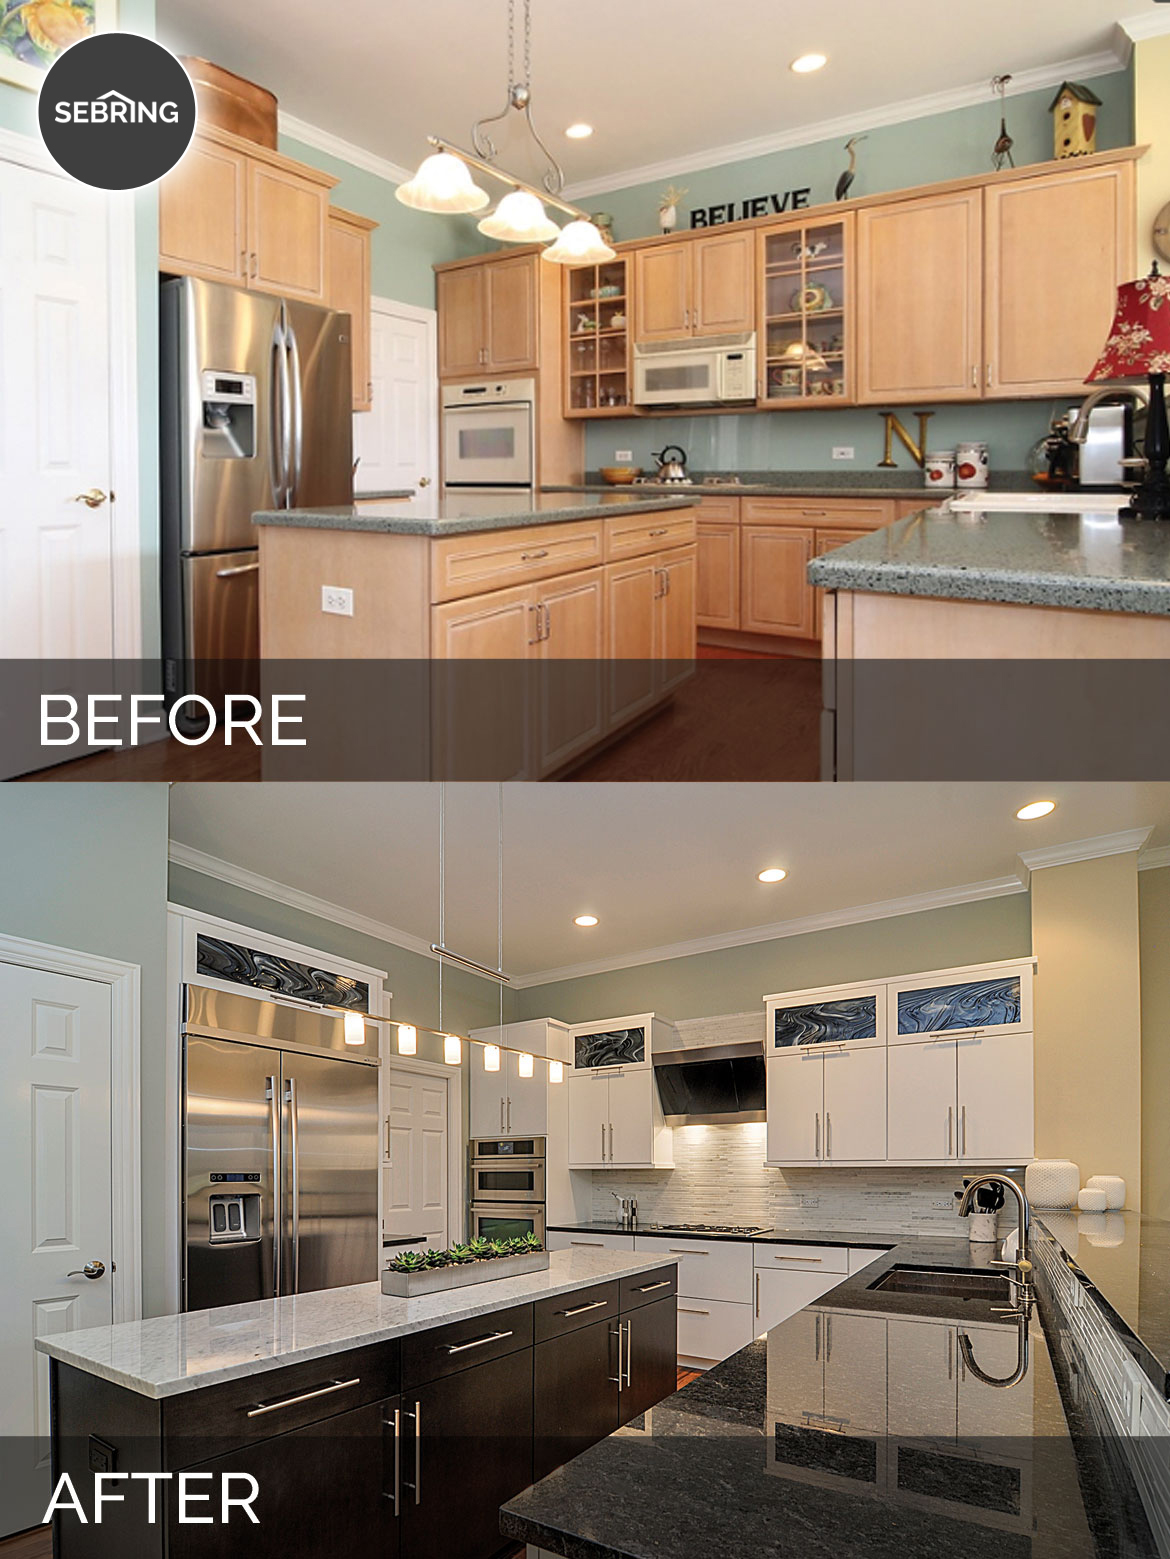 Doug natalie 39 s kitchen before after pictures home for Kitchen renovation before and after